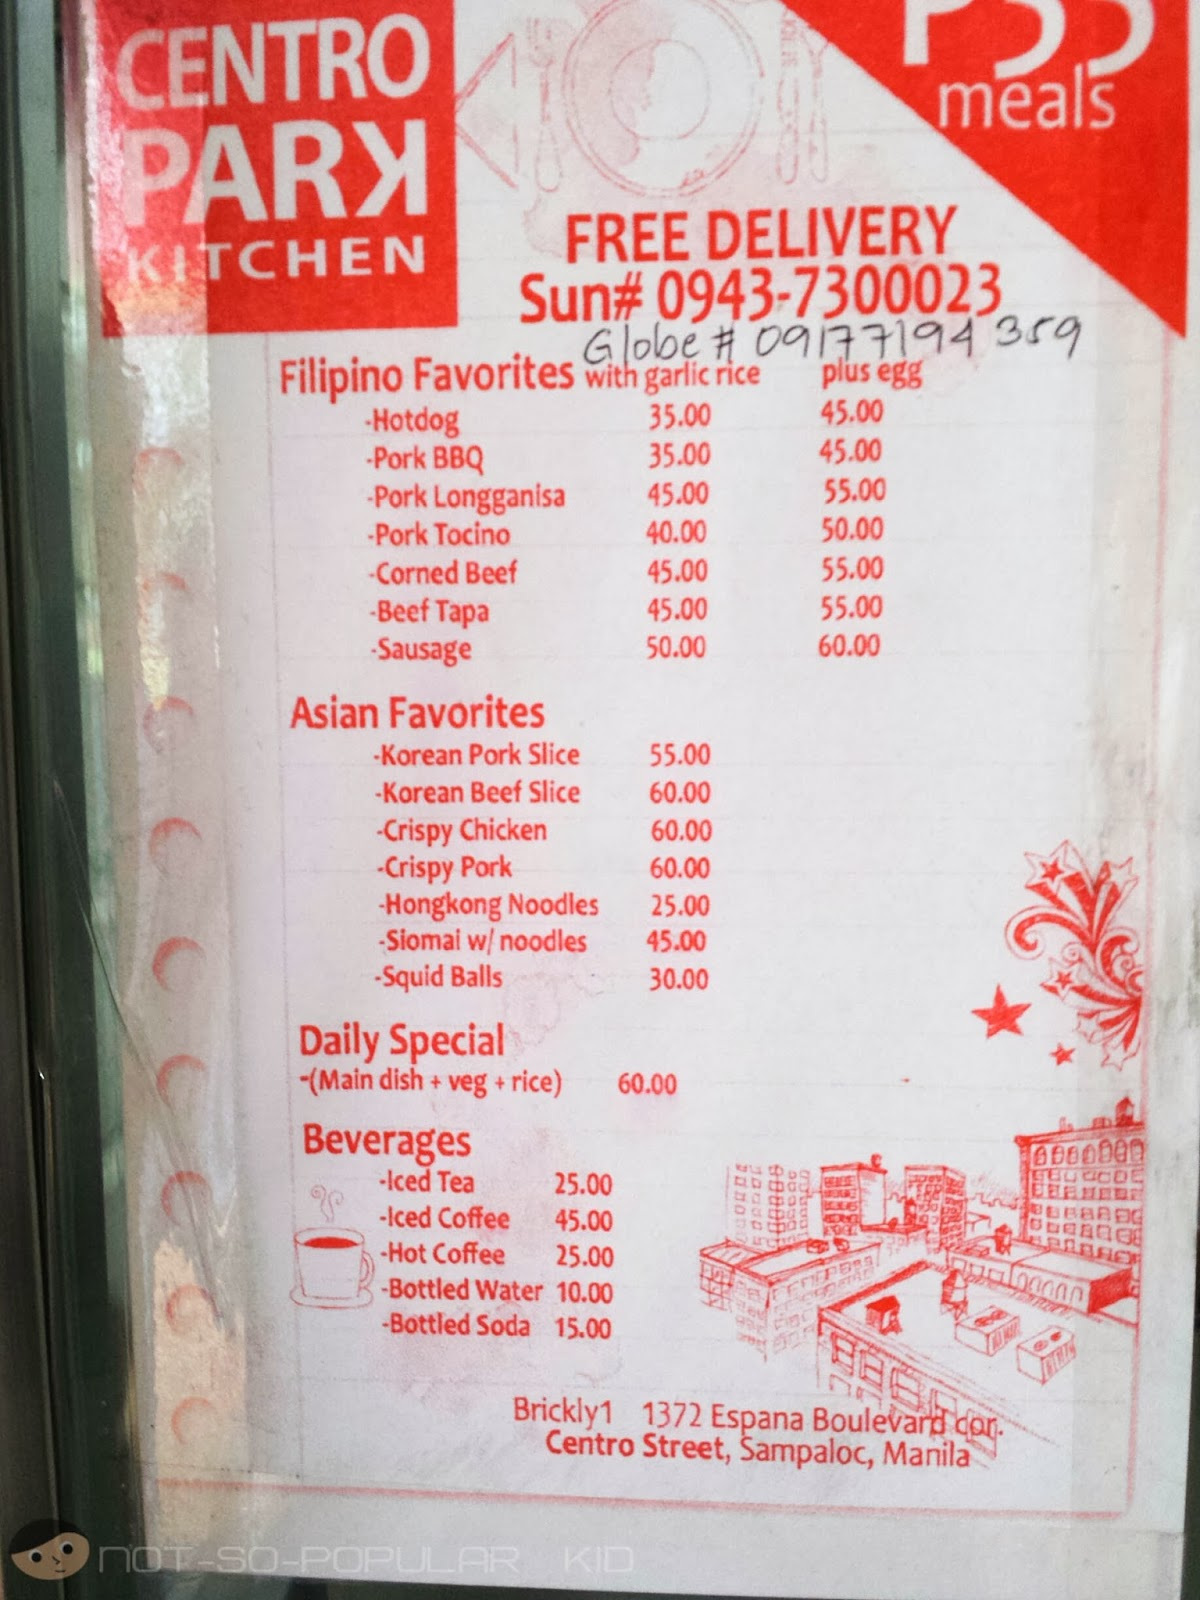 Centro Park Kitchen Menu and Delivery Contact No.